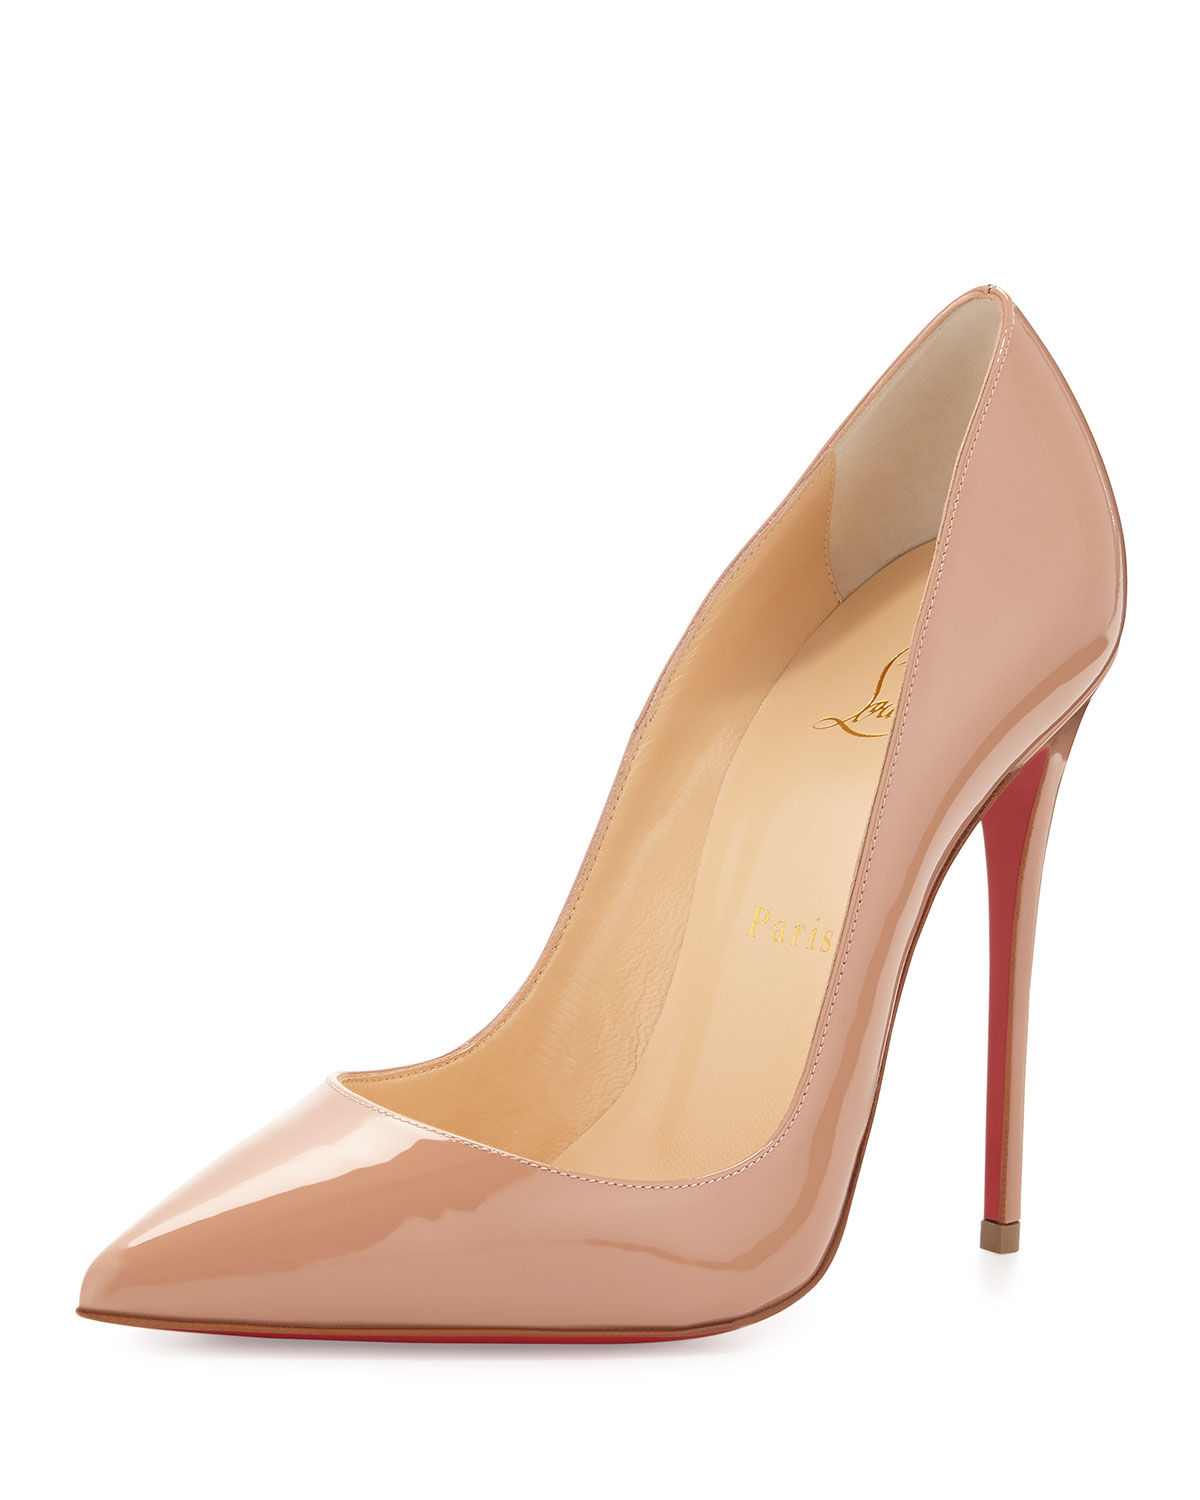 Christian Louboutin So Kate Patent Red Sole Pump, Nude, Women's, Size: 37.5B/7.5B